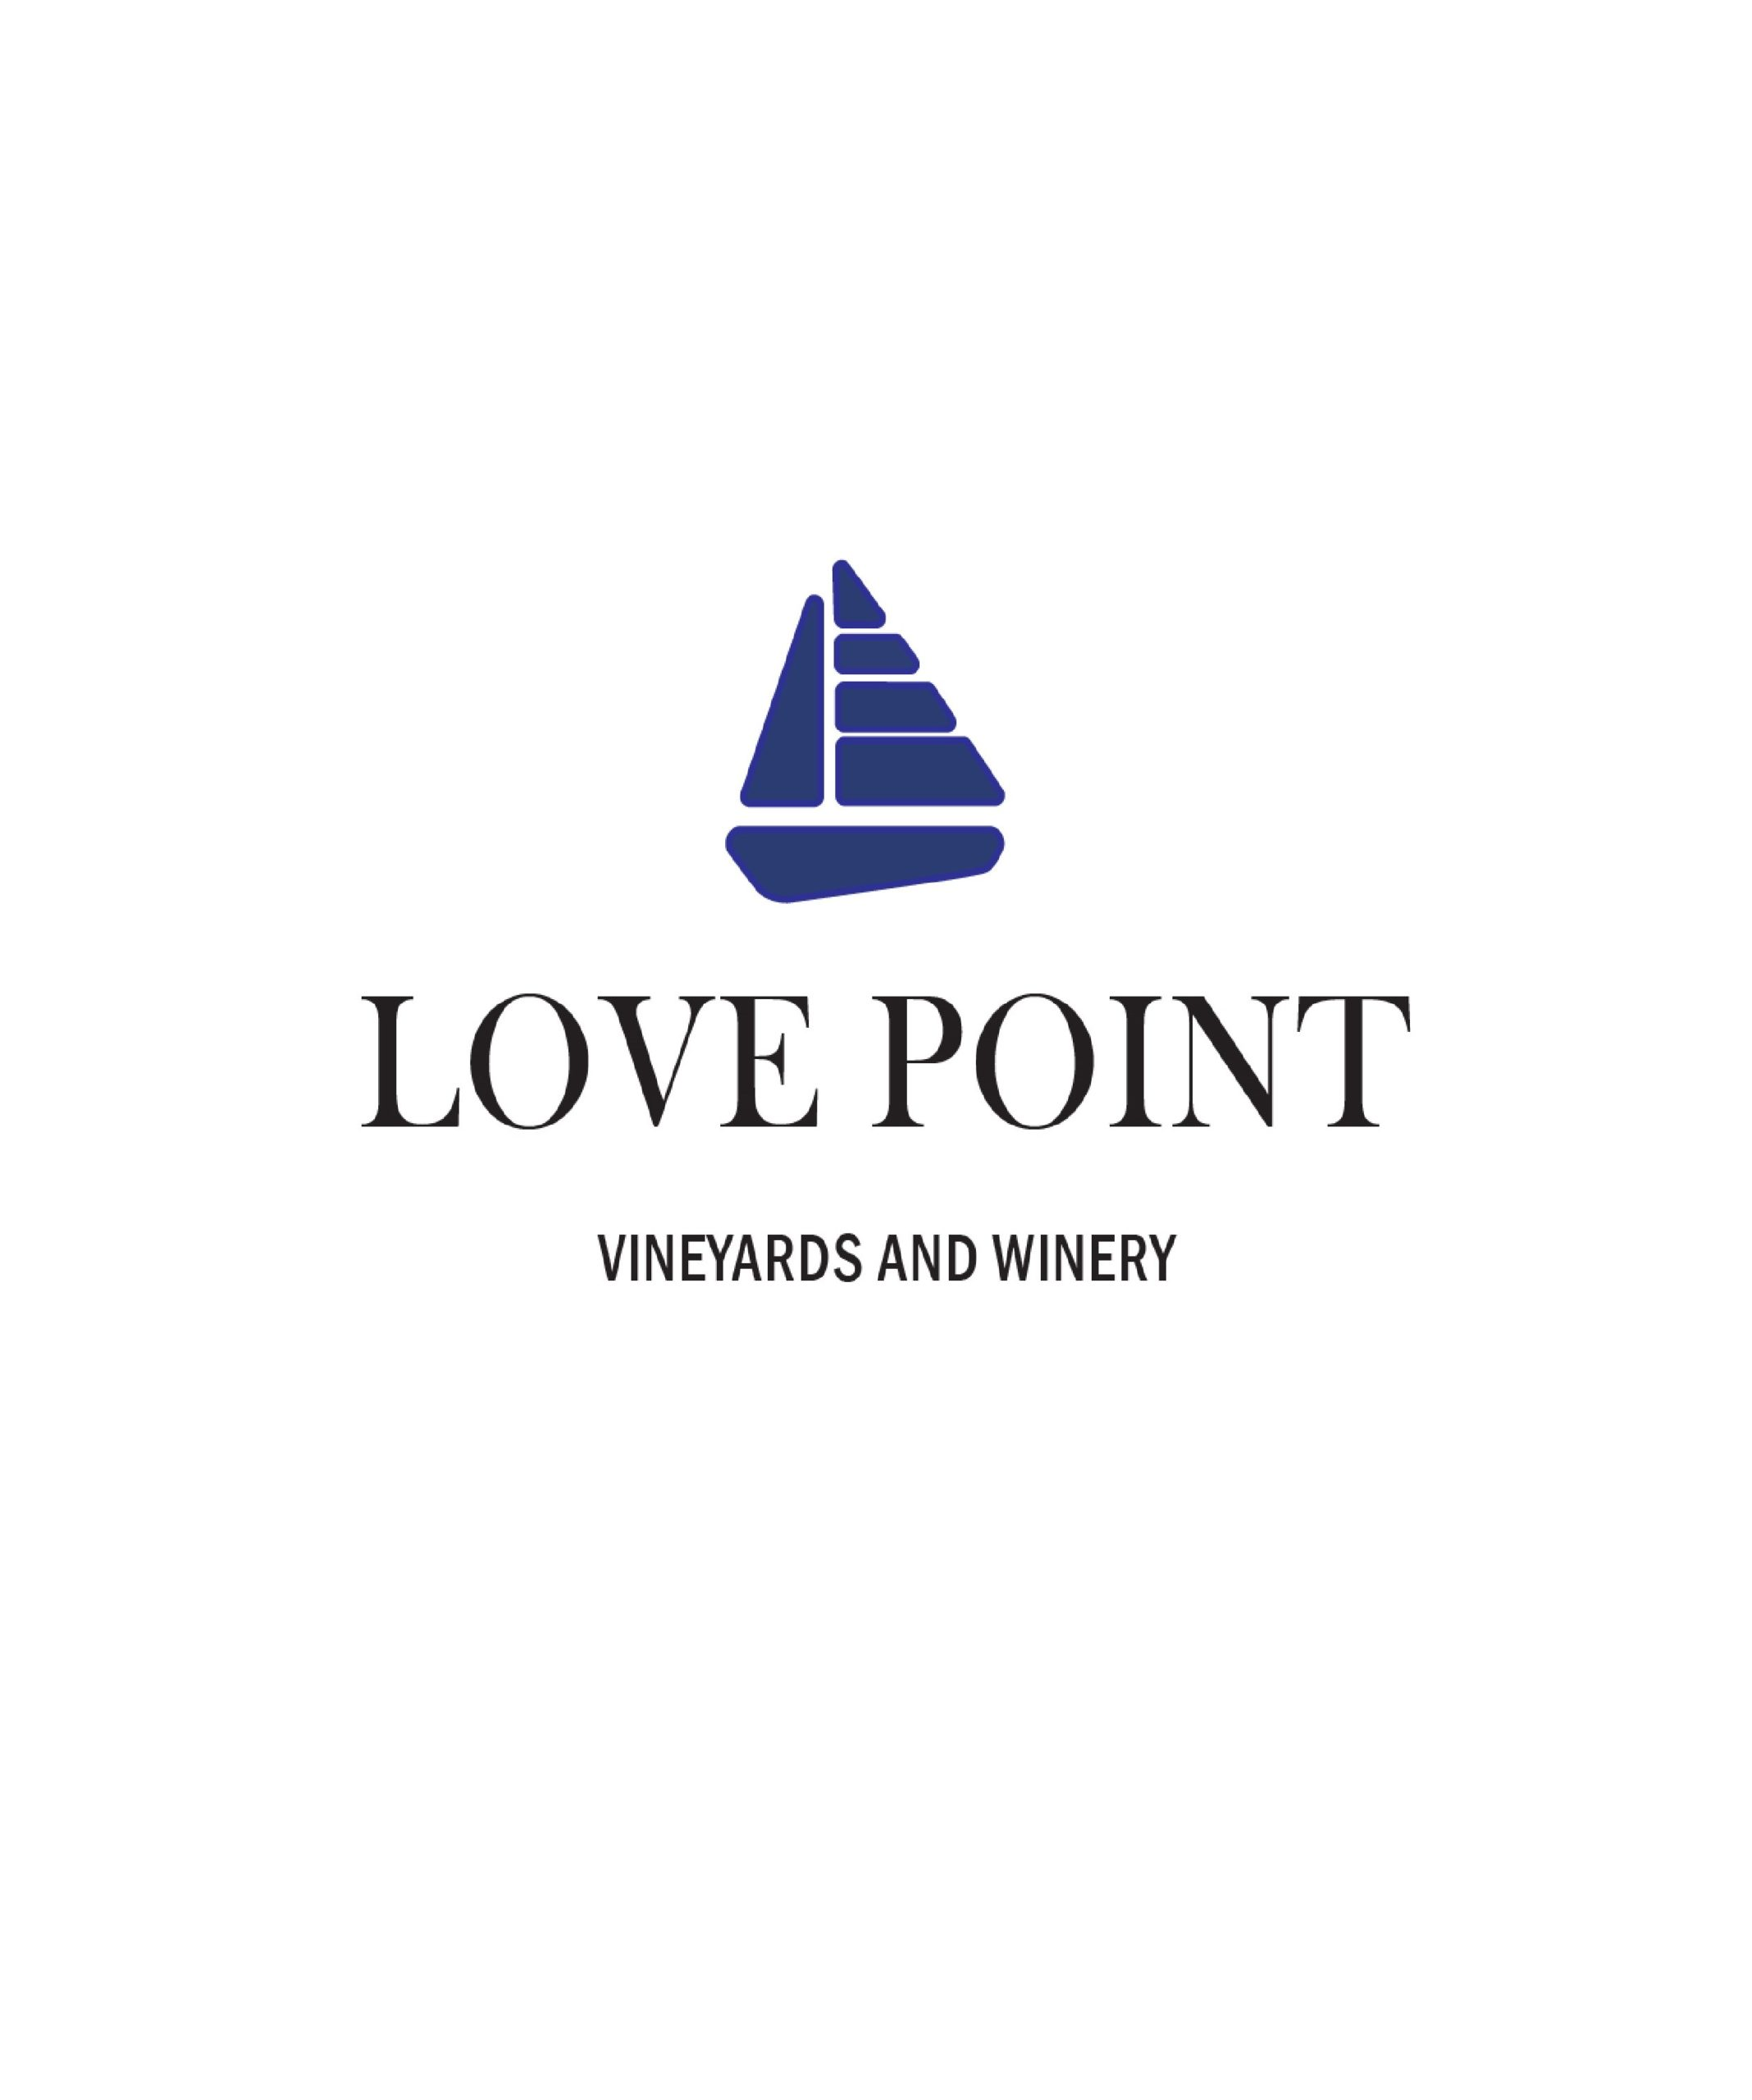 Love Point Vineyards and Winery